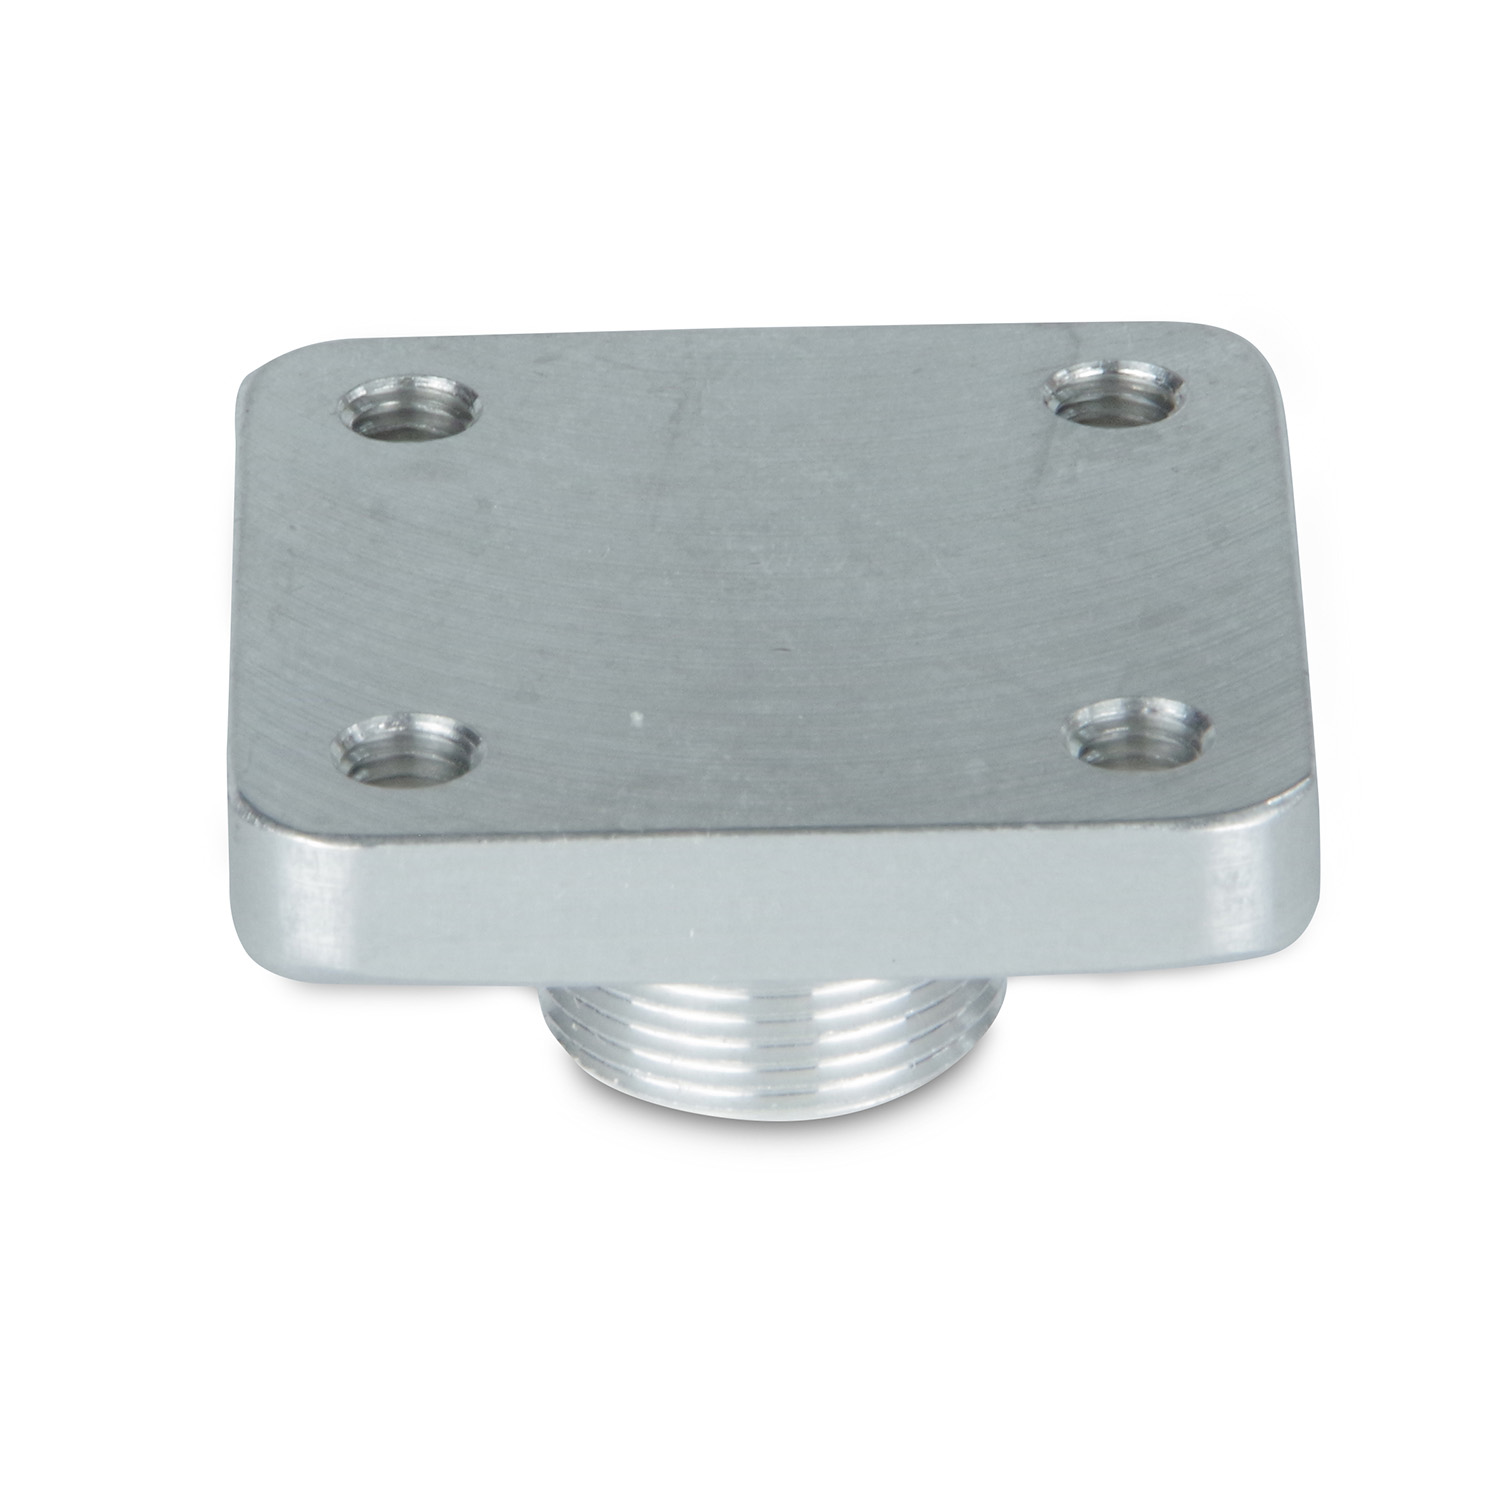 ADZ Short stroke cylinder adapter